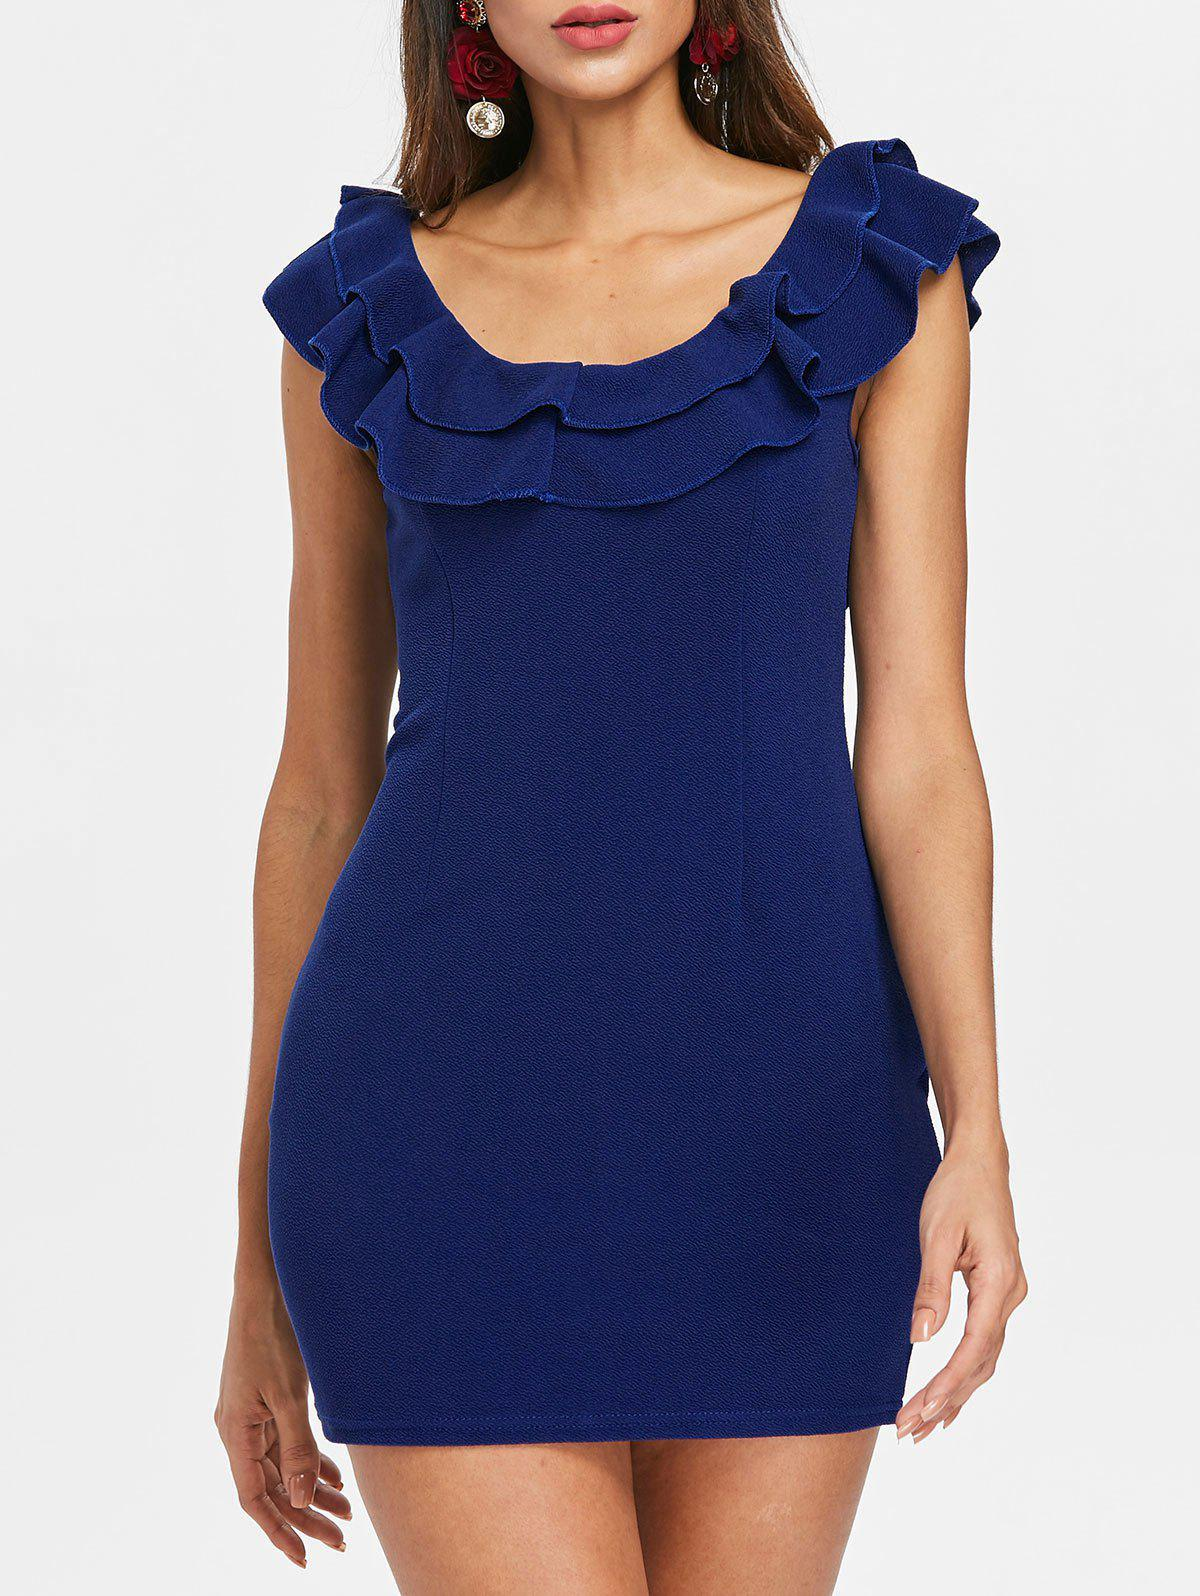 Online Flounce Trim Back Cut Out Bodycon Dress